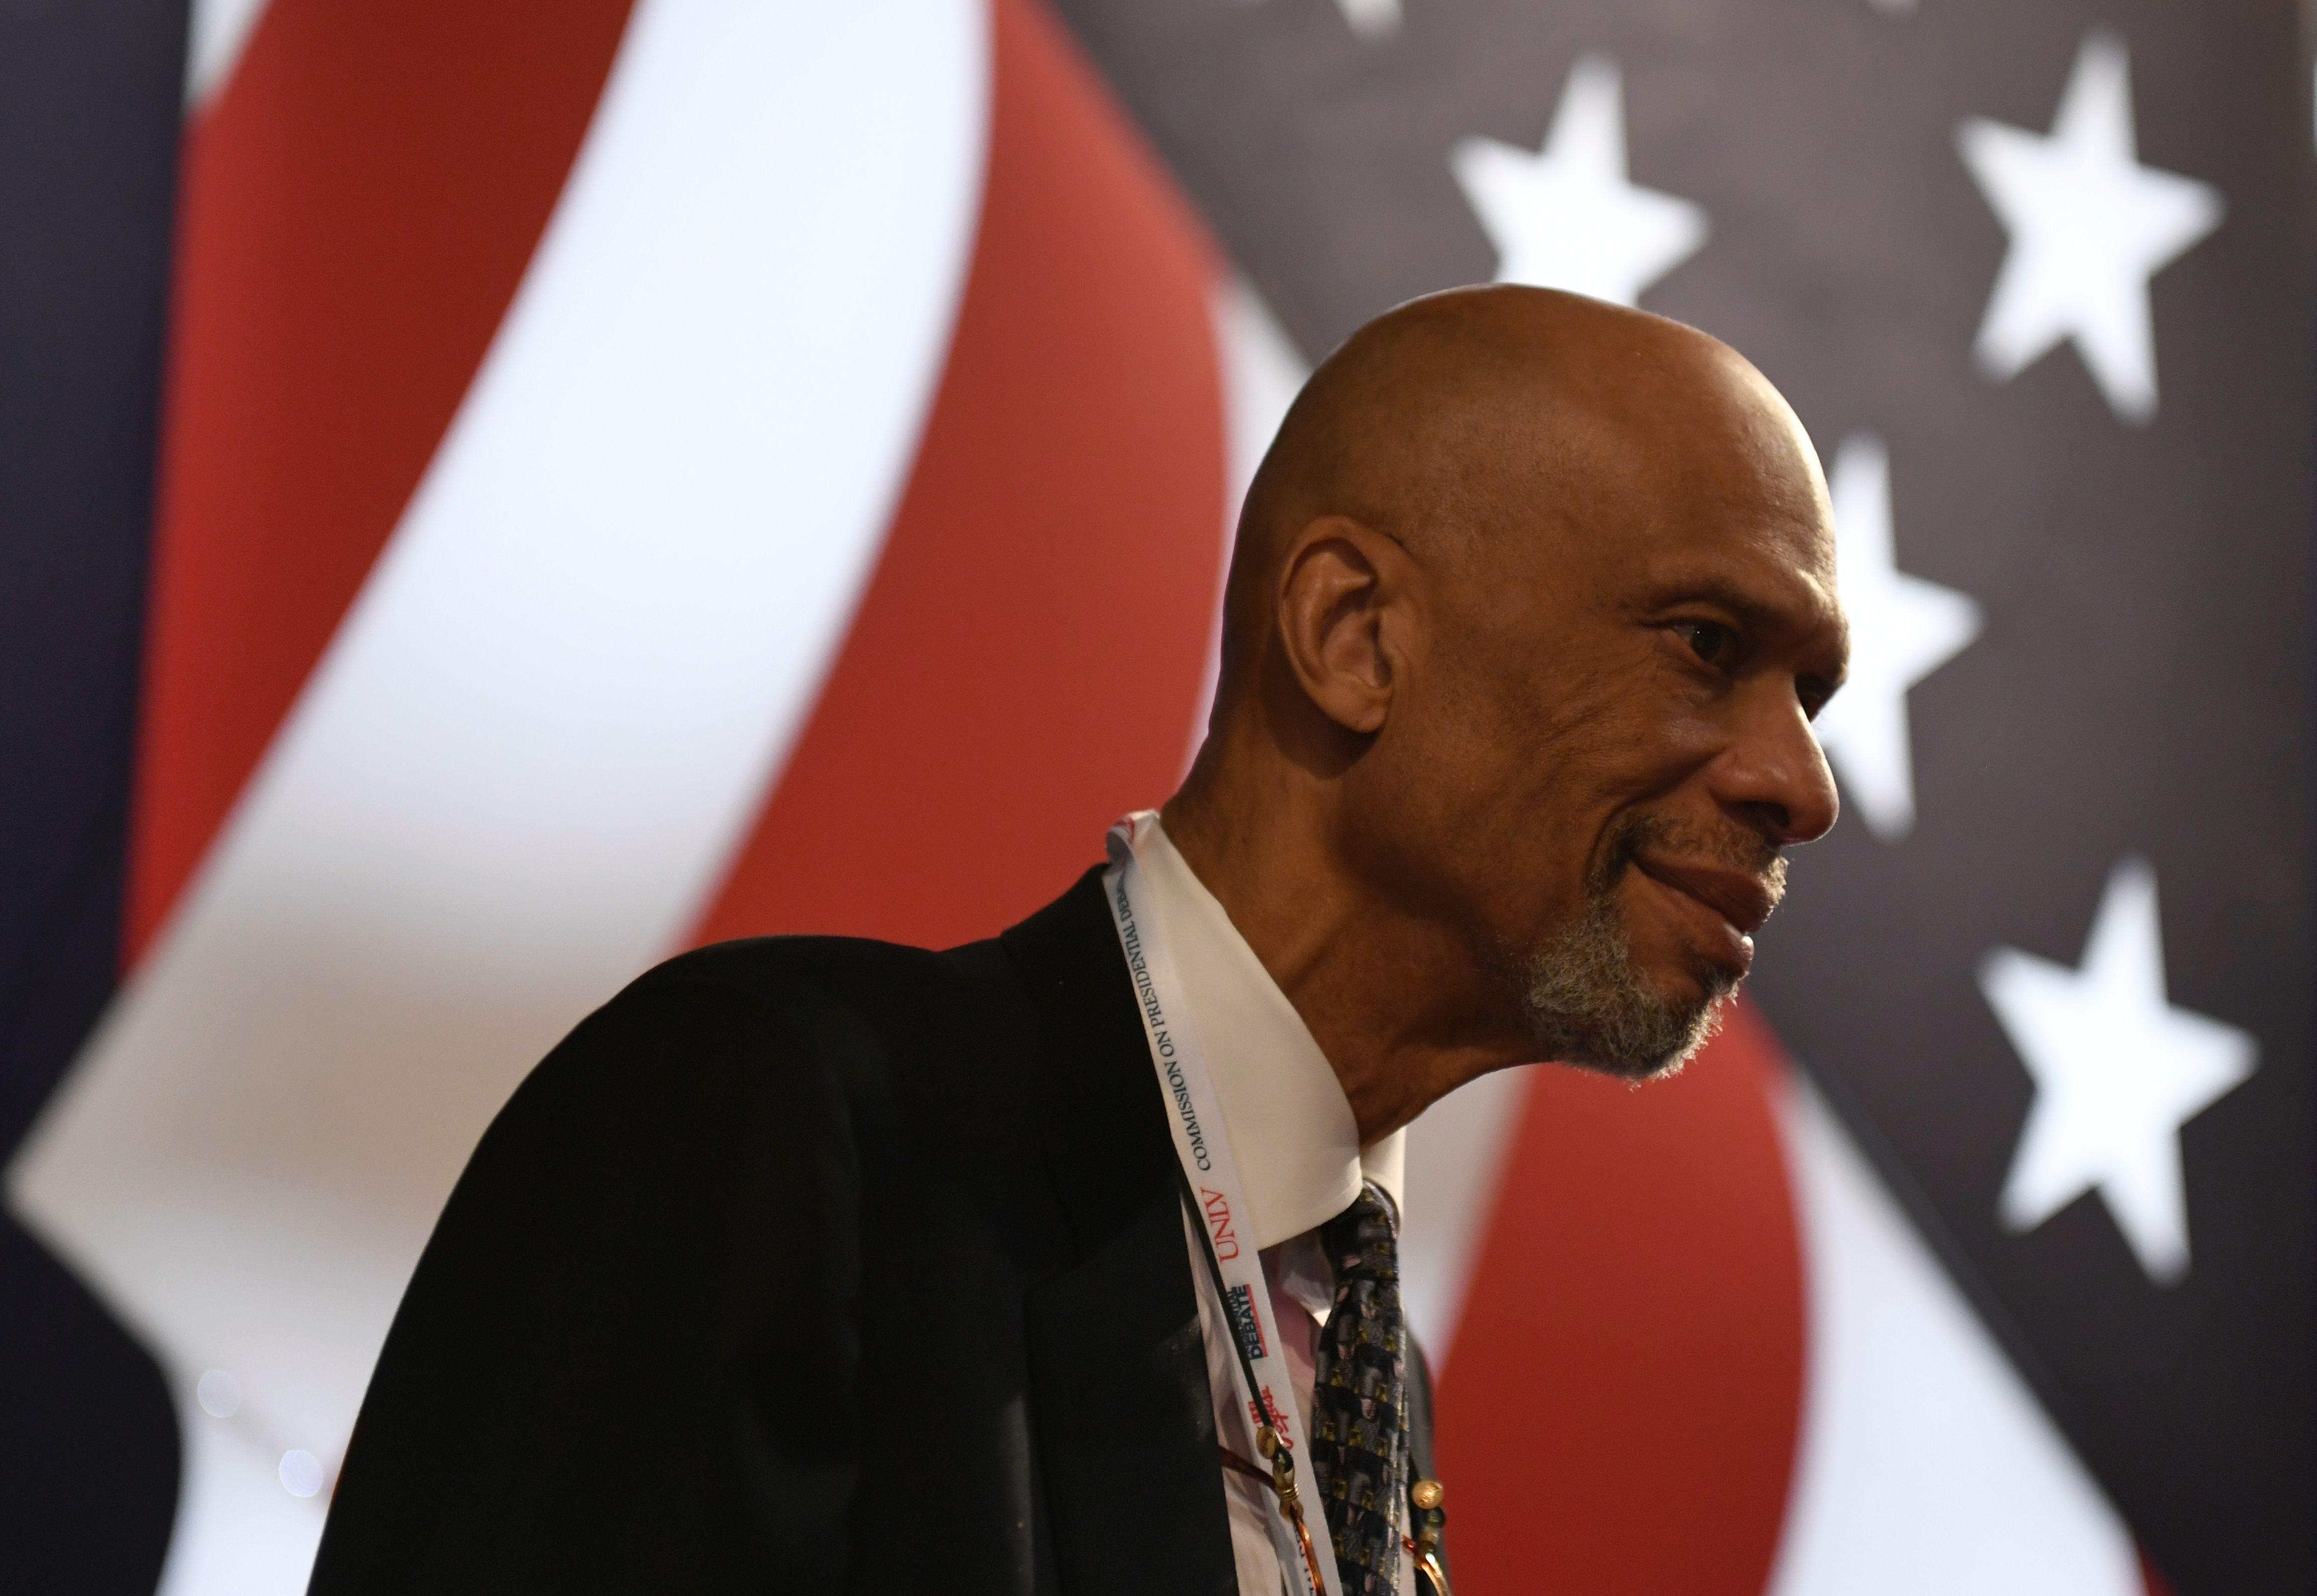 Kareem Abdul-Jabbar on protest pushback: 'They don't like the message'